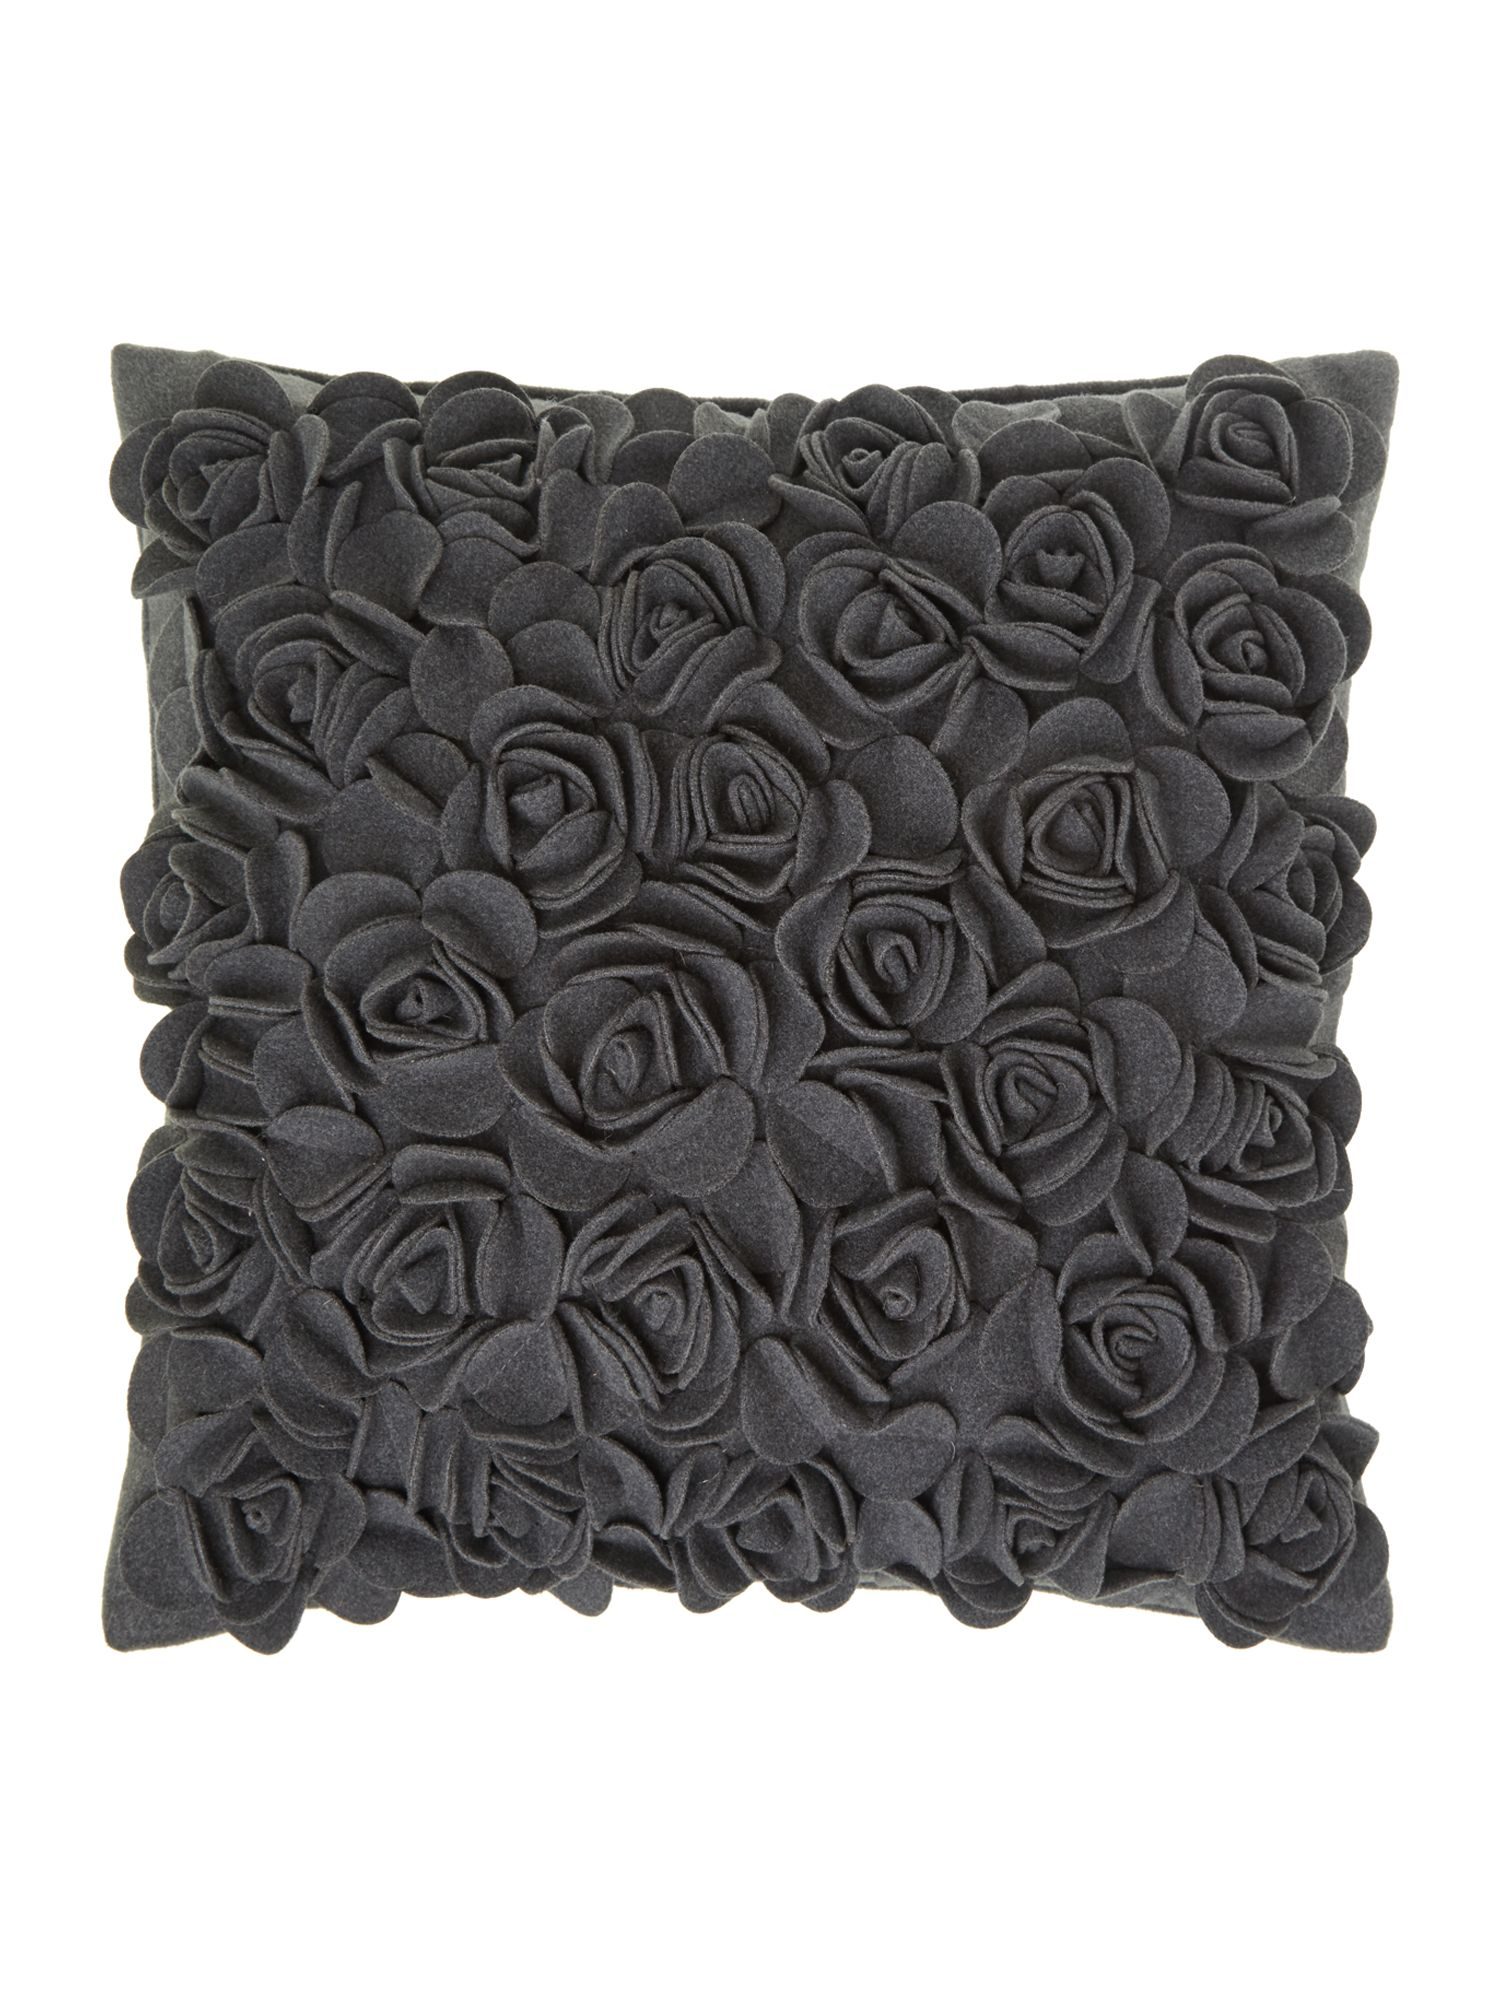 Dark grey rose felt cushion